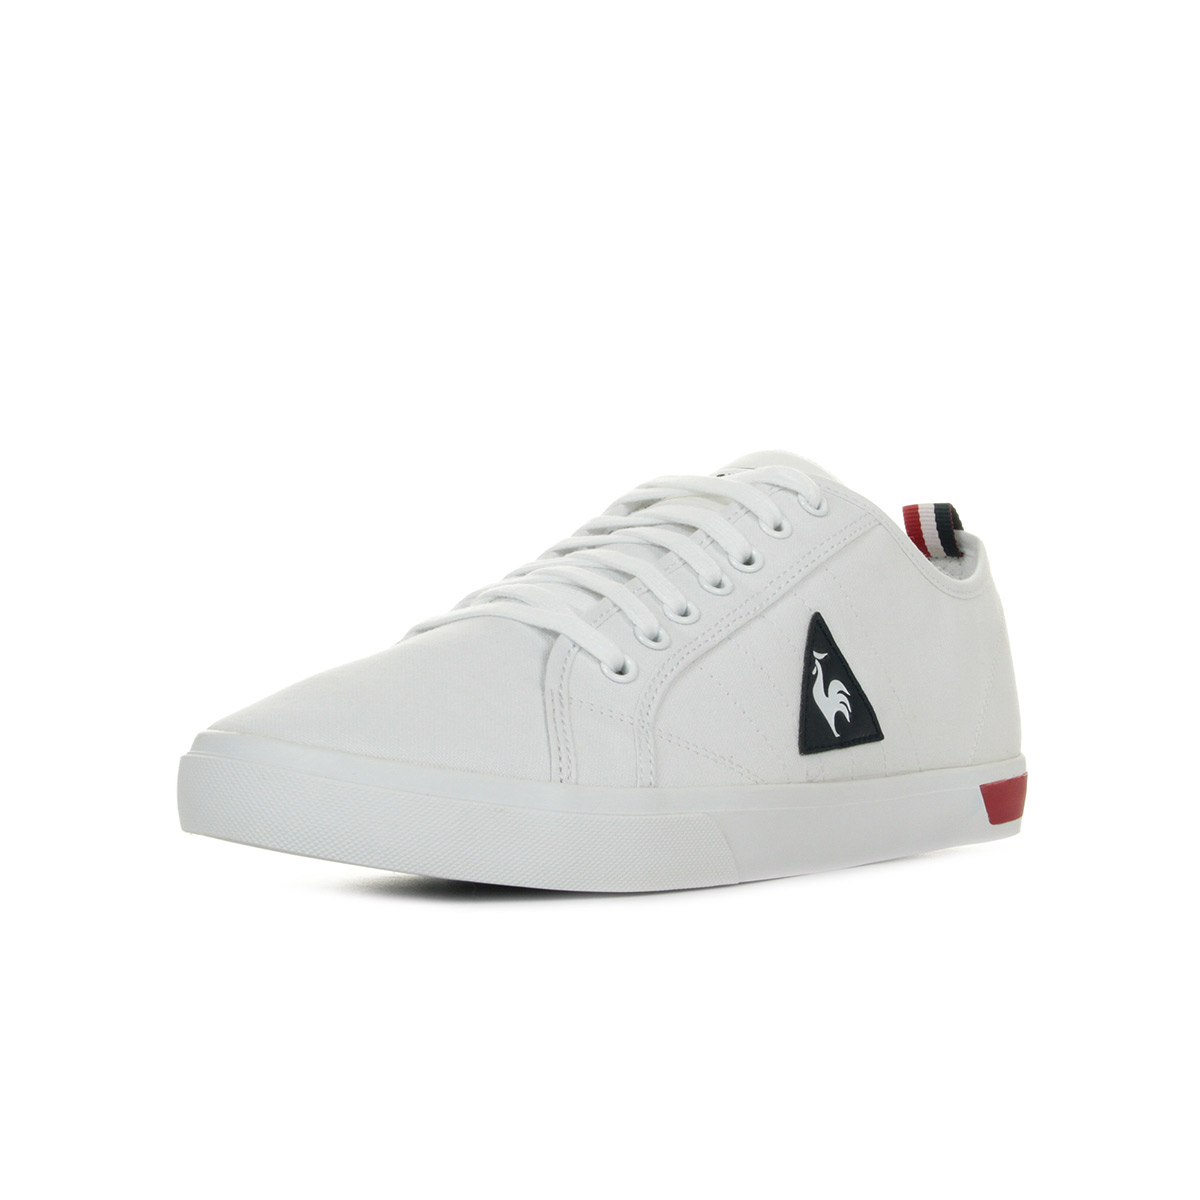 Le Coq Sportif Chaussures ARES BBR